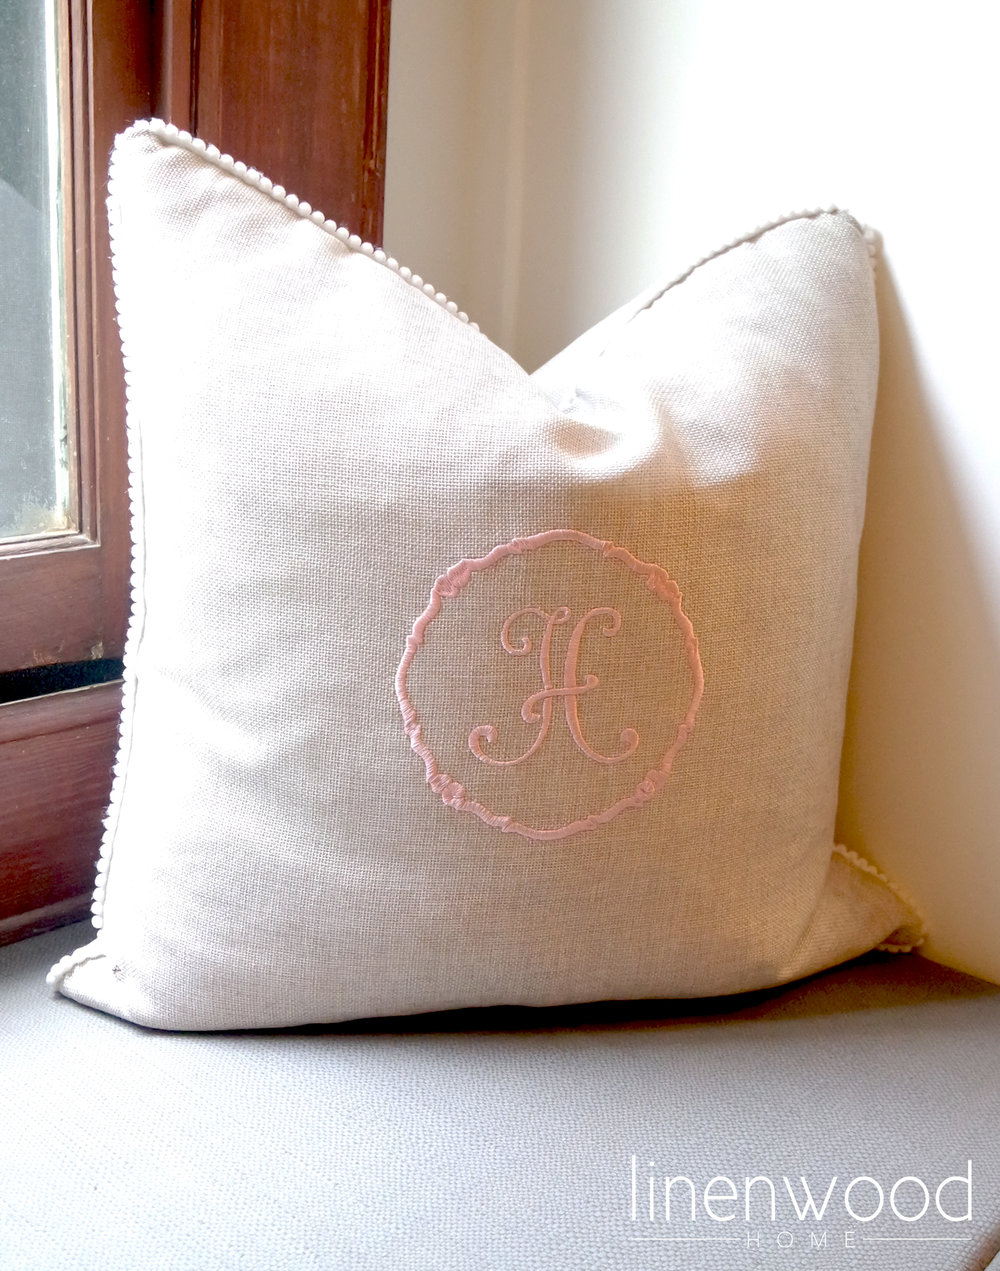 Custom pillows were created with the girls initials in soft pink.